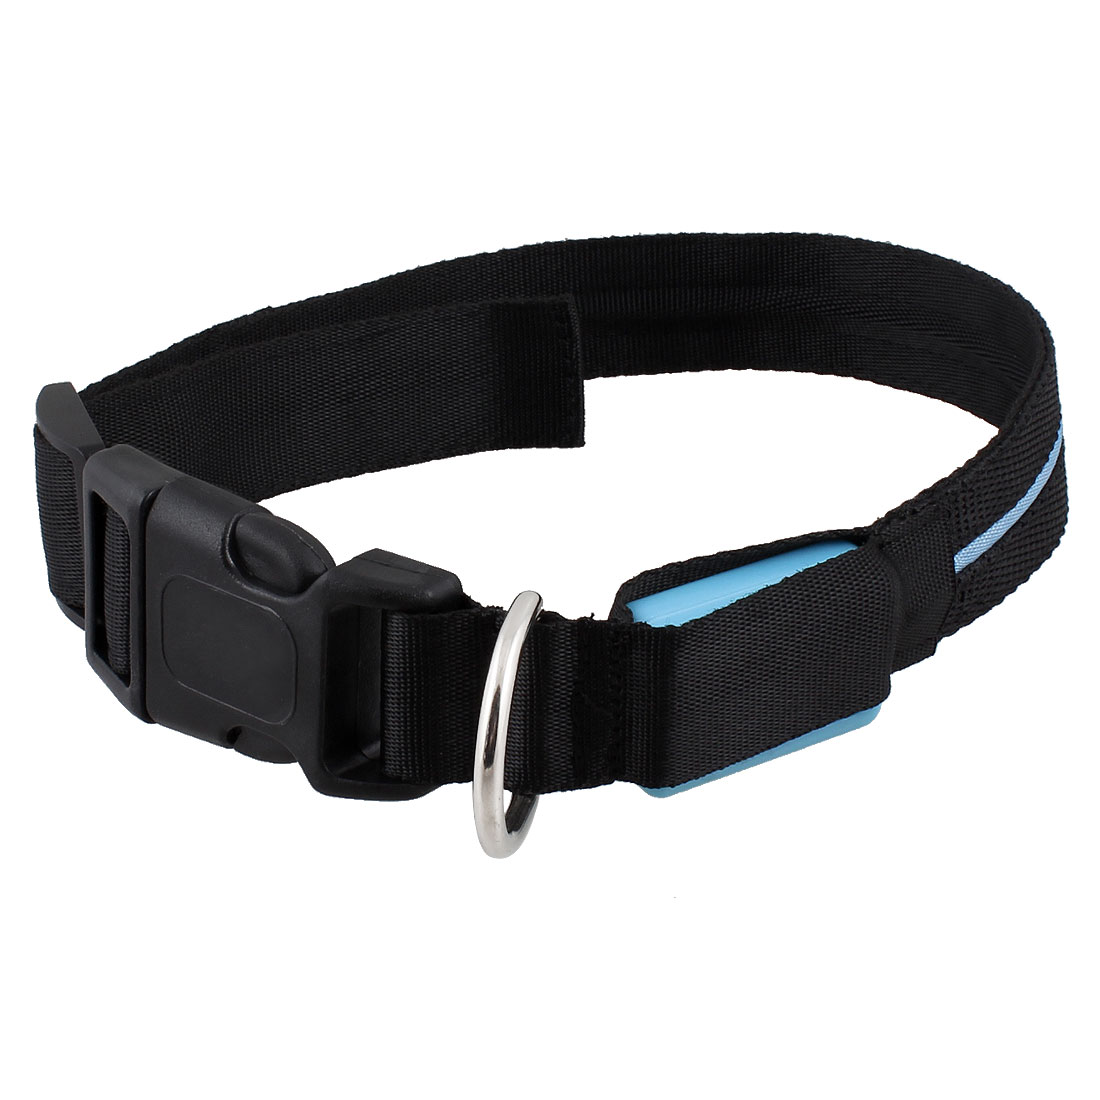 Blue LED Night Safety Flash Light Up Pet Cat Dog Collar Belt 22""